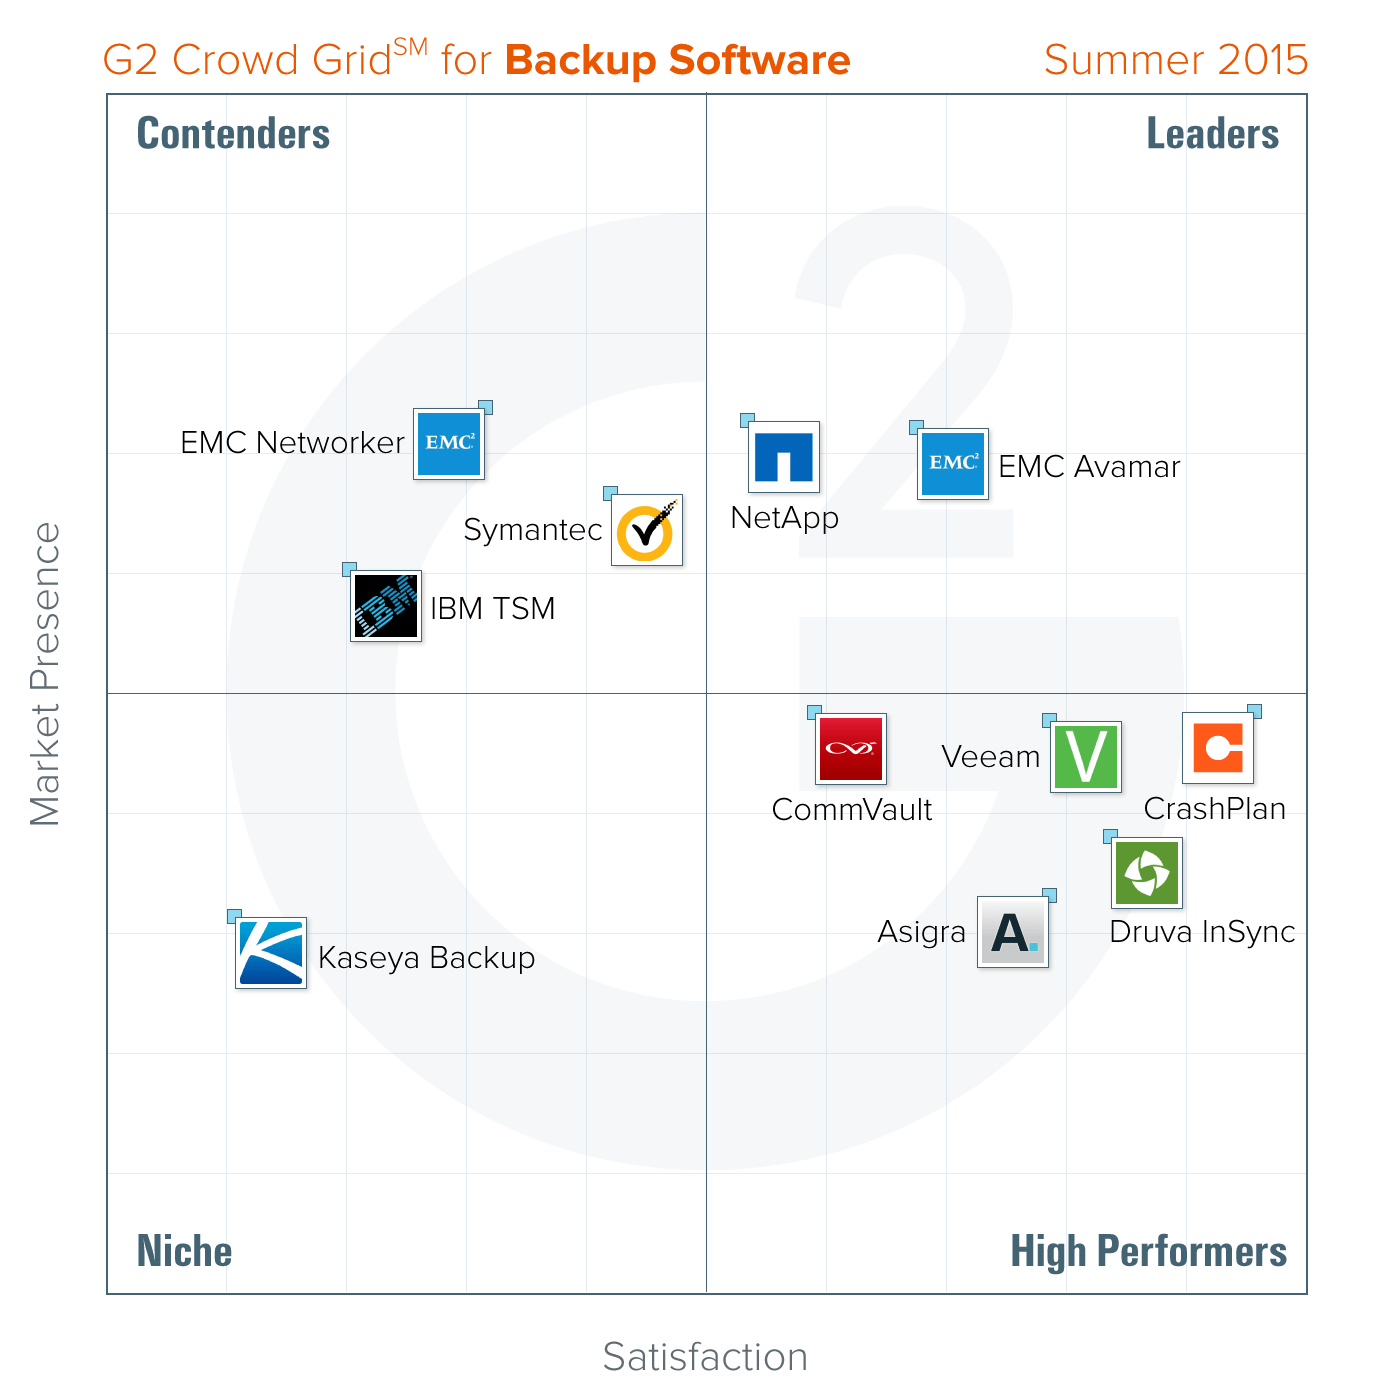 Best Backup Software Summer 2015 Report from G2 Crowd